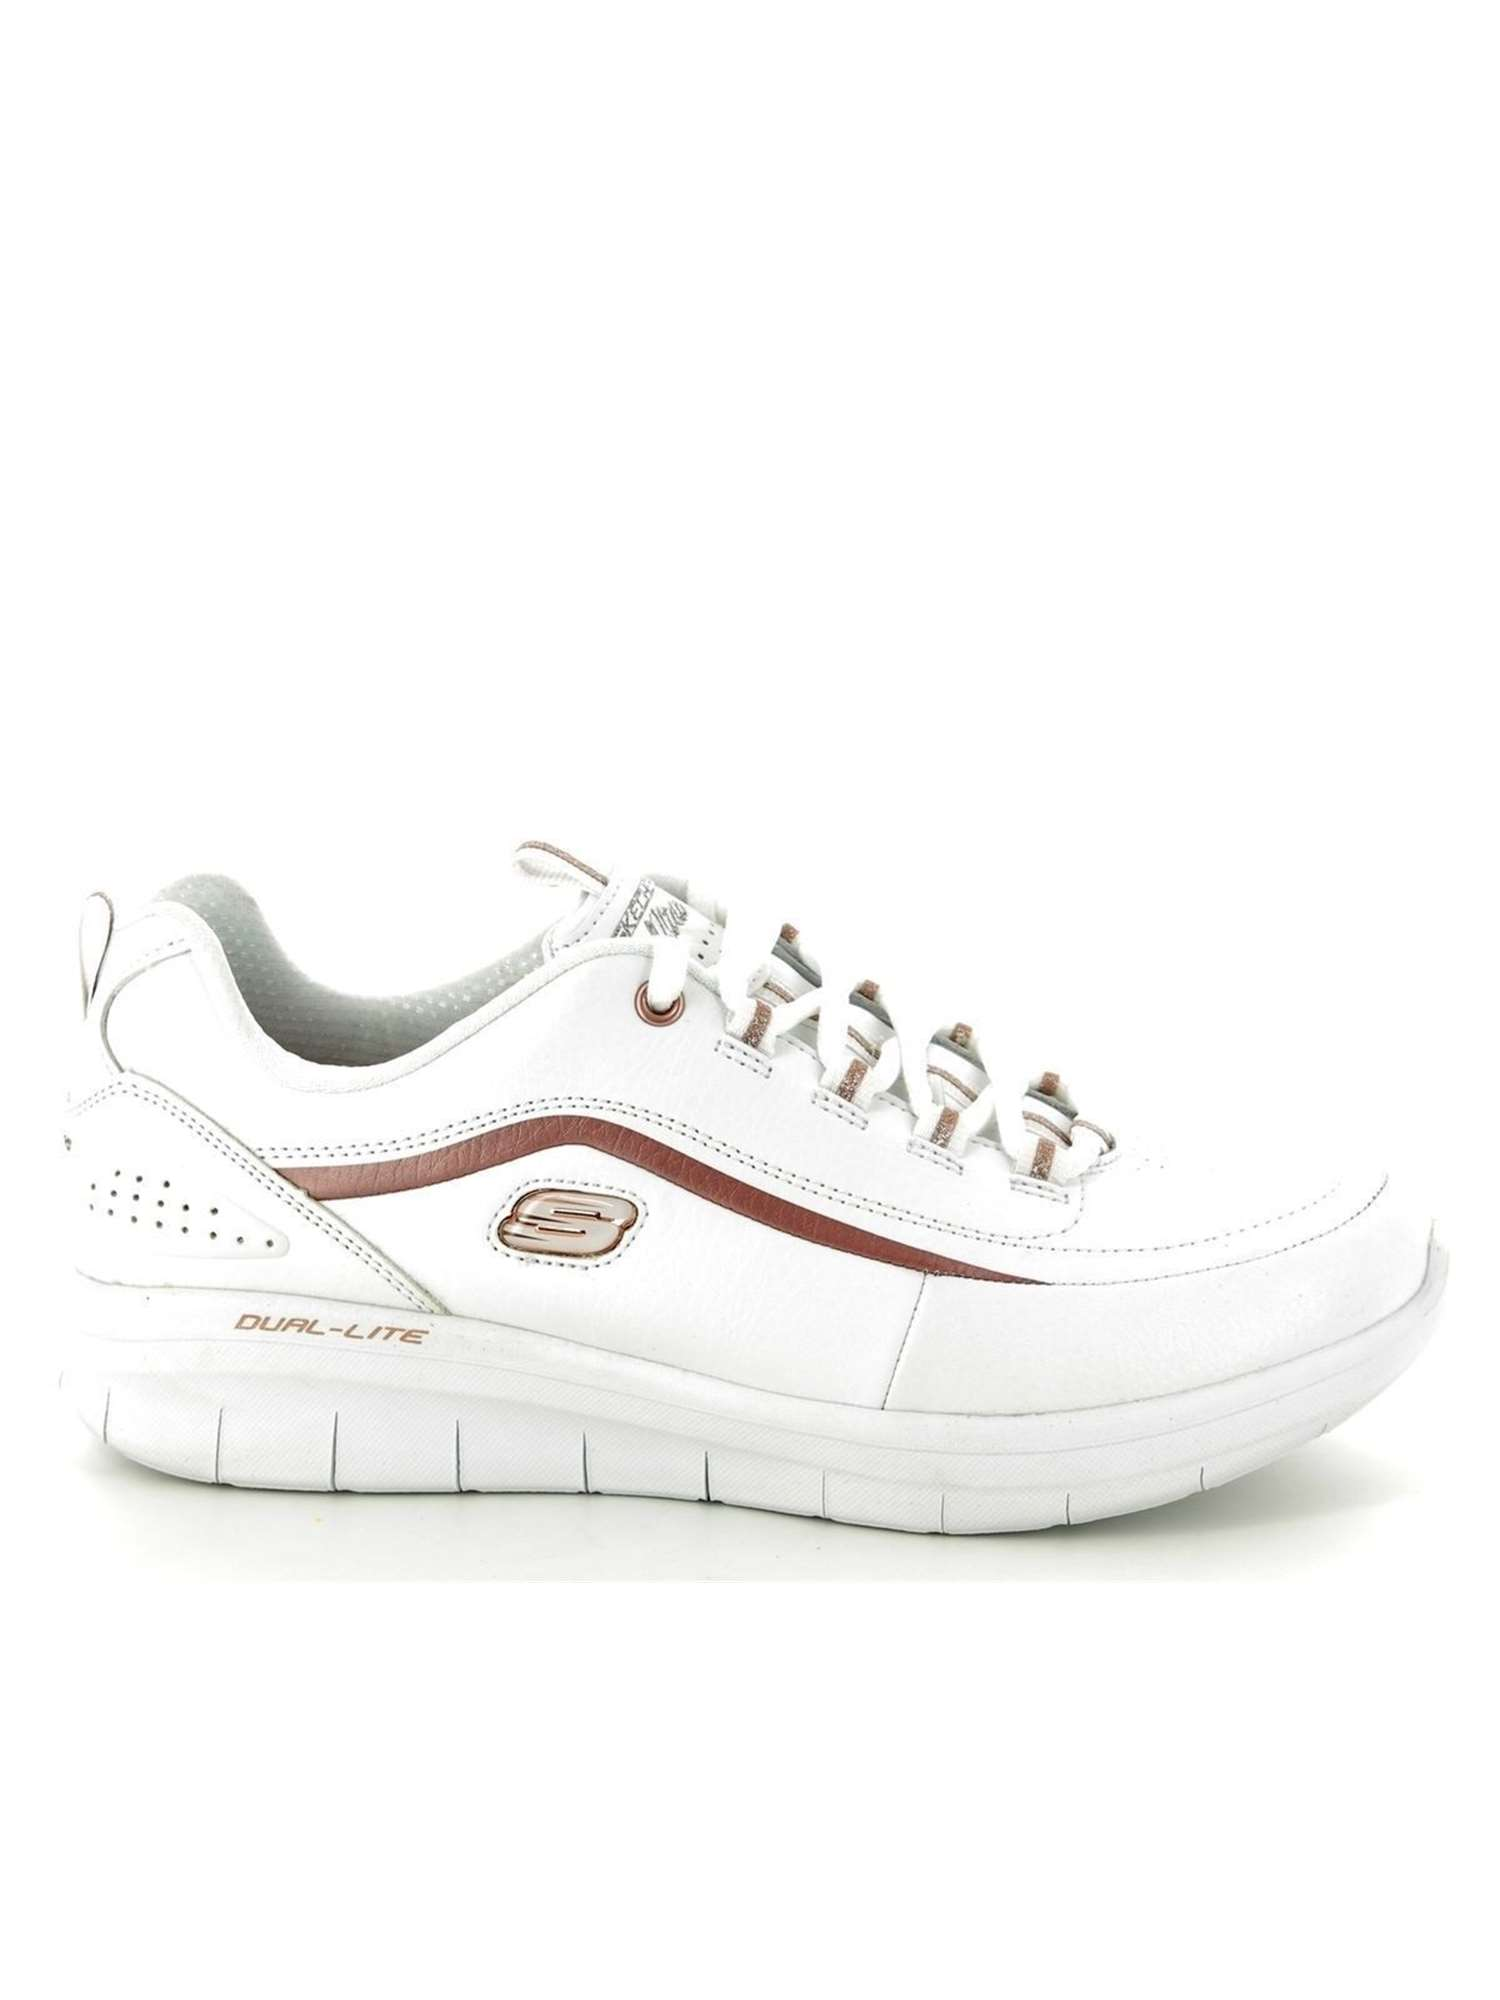 Skechers Sneakers Bianco   Sneakers Donna Ecopelle   Tania